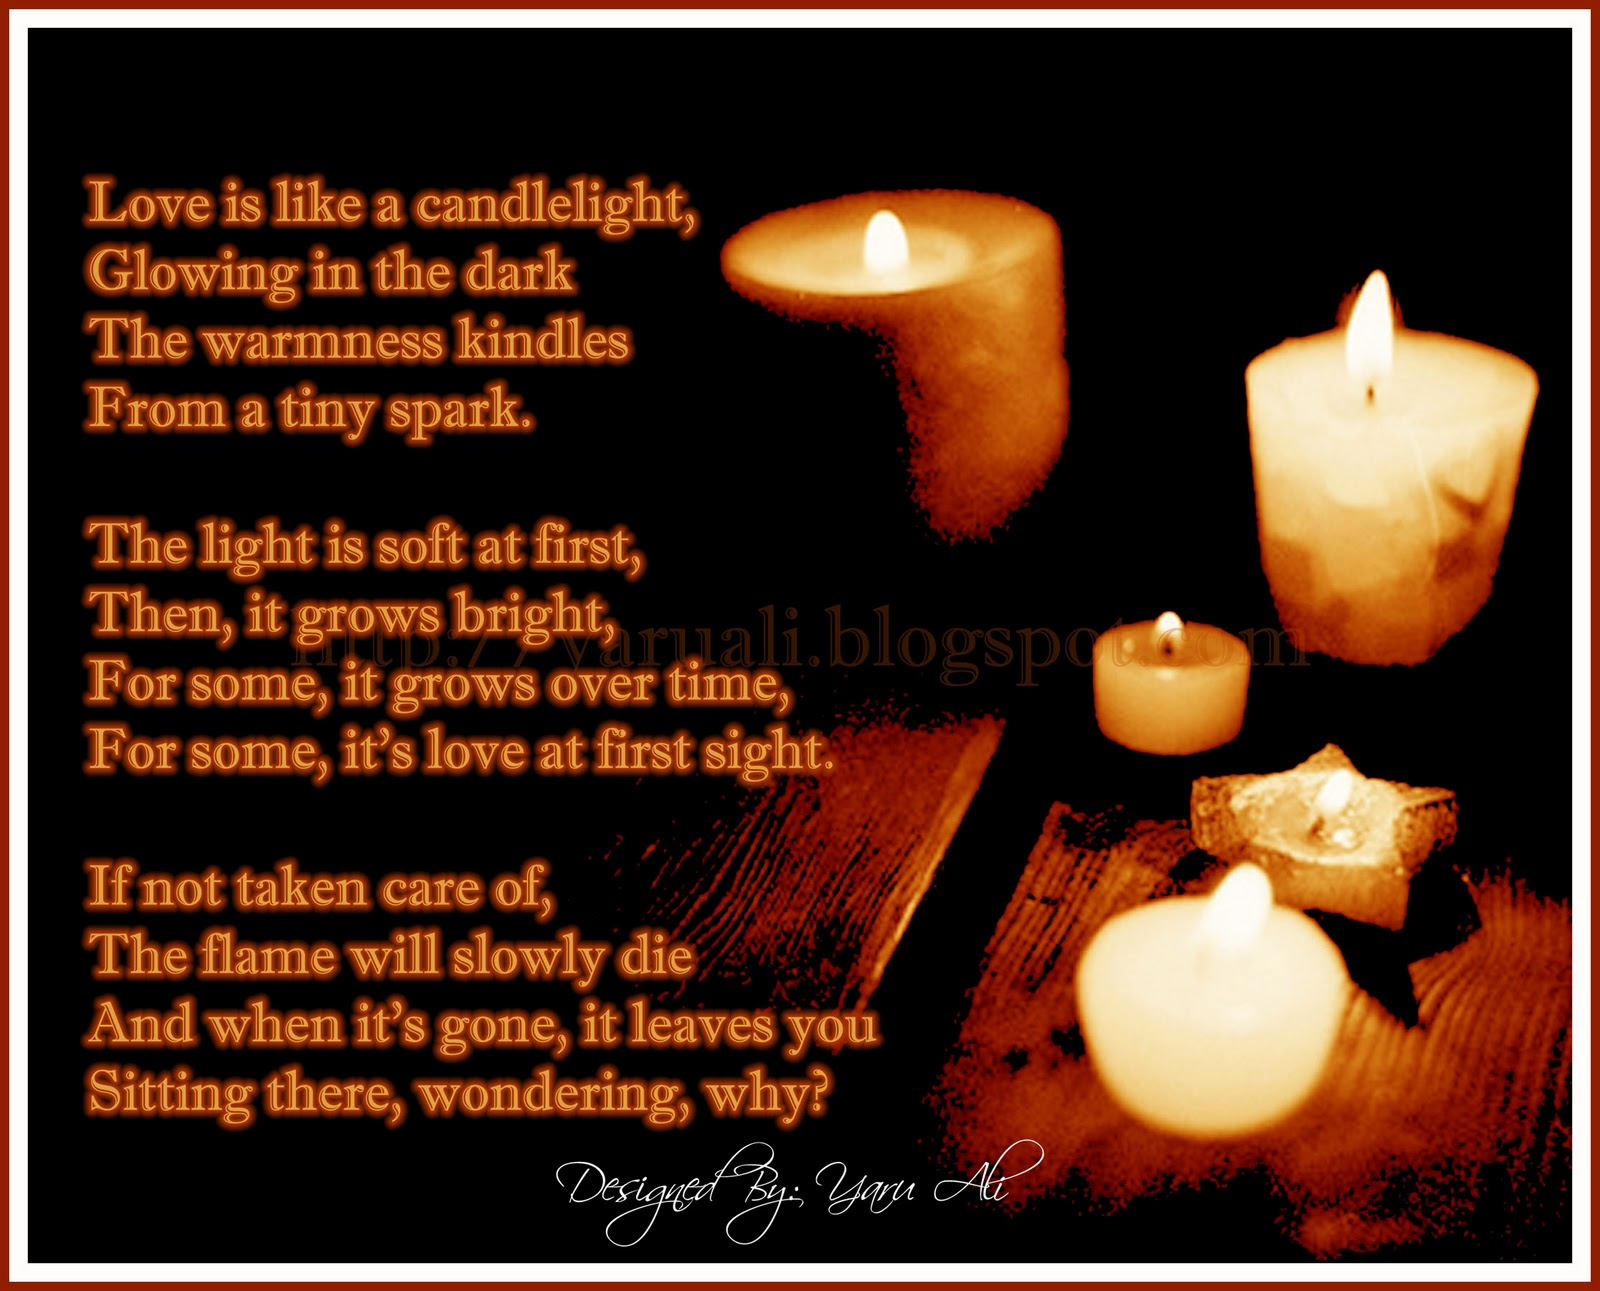 Candle lighting Poems for Lamp Quotes Sayings  587fsj